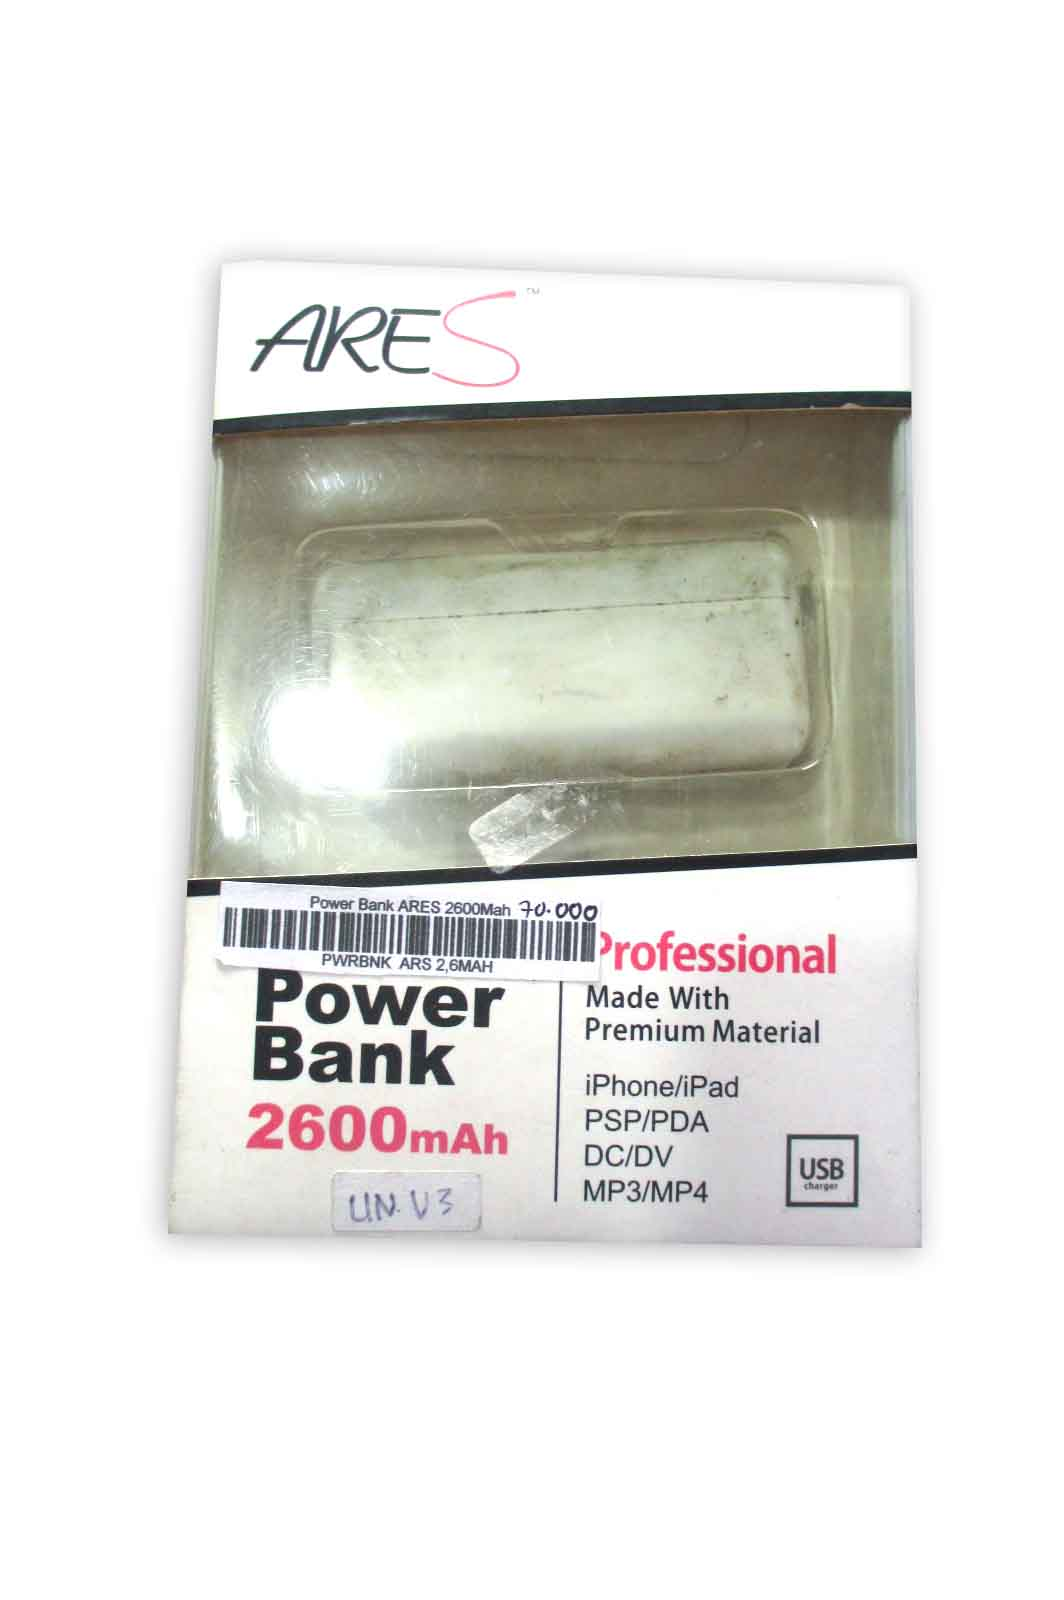 Power Bank ARES 2600Mah